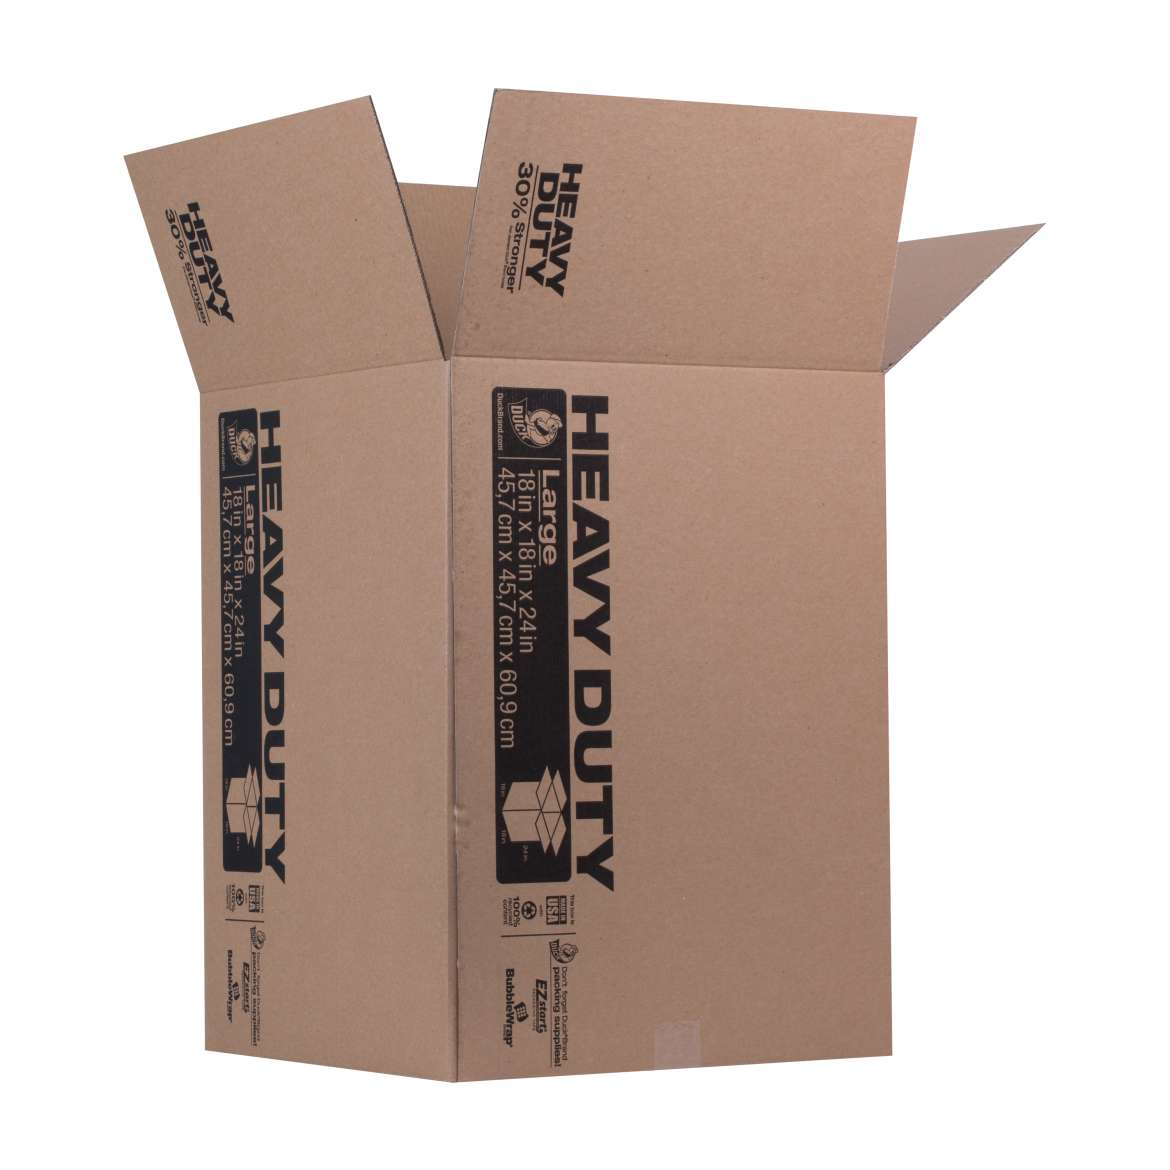 Duck® Brand Heavy Duty Kraft Box - Brown, 18 in. x 18 in. x 24 in. Image